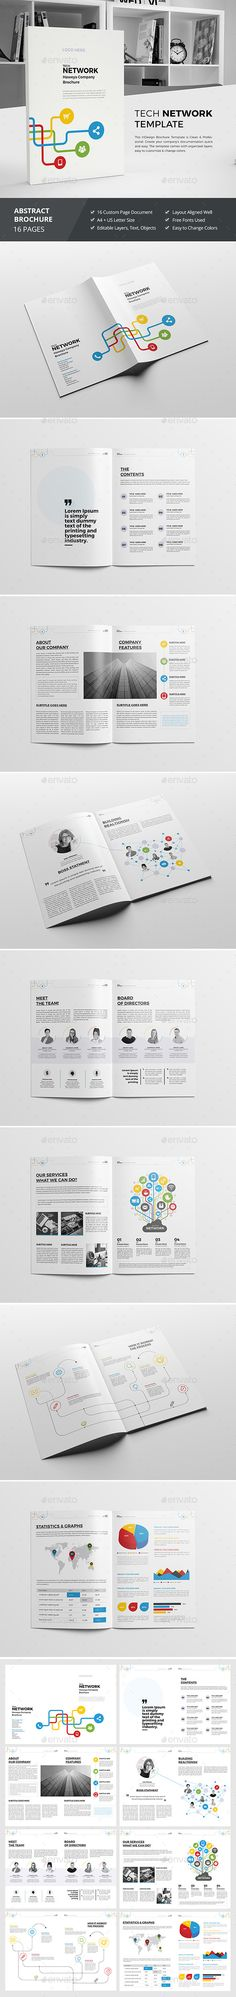 Haweya Tech Network Brochure — InDesign INDD #light #business • Download ➝ https://graphicriver.net/item/haweya-tech-network-brochure-/16867711?ref=pxcr